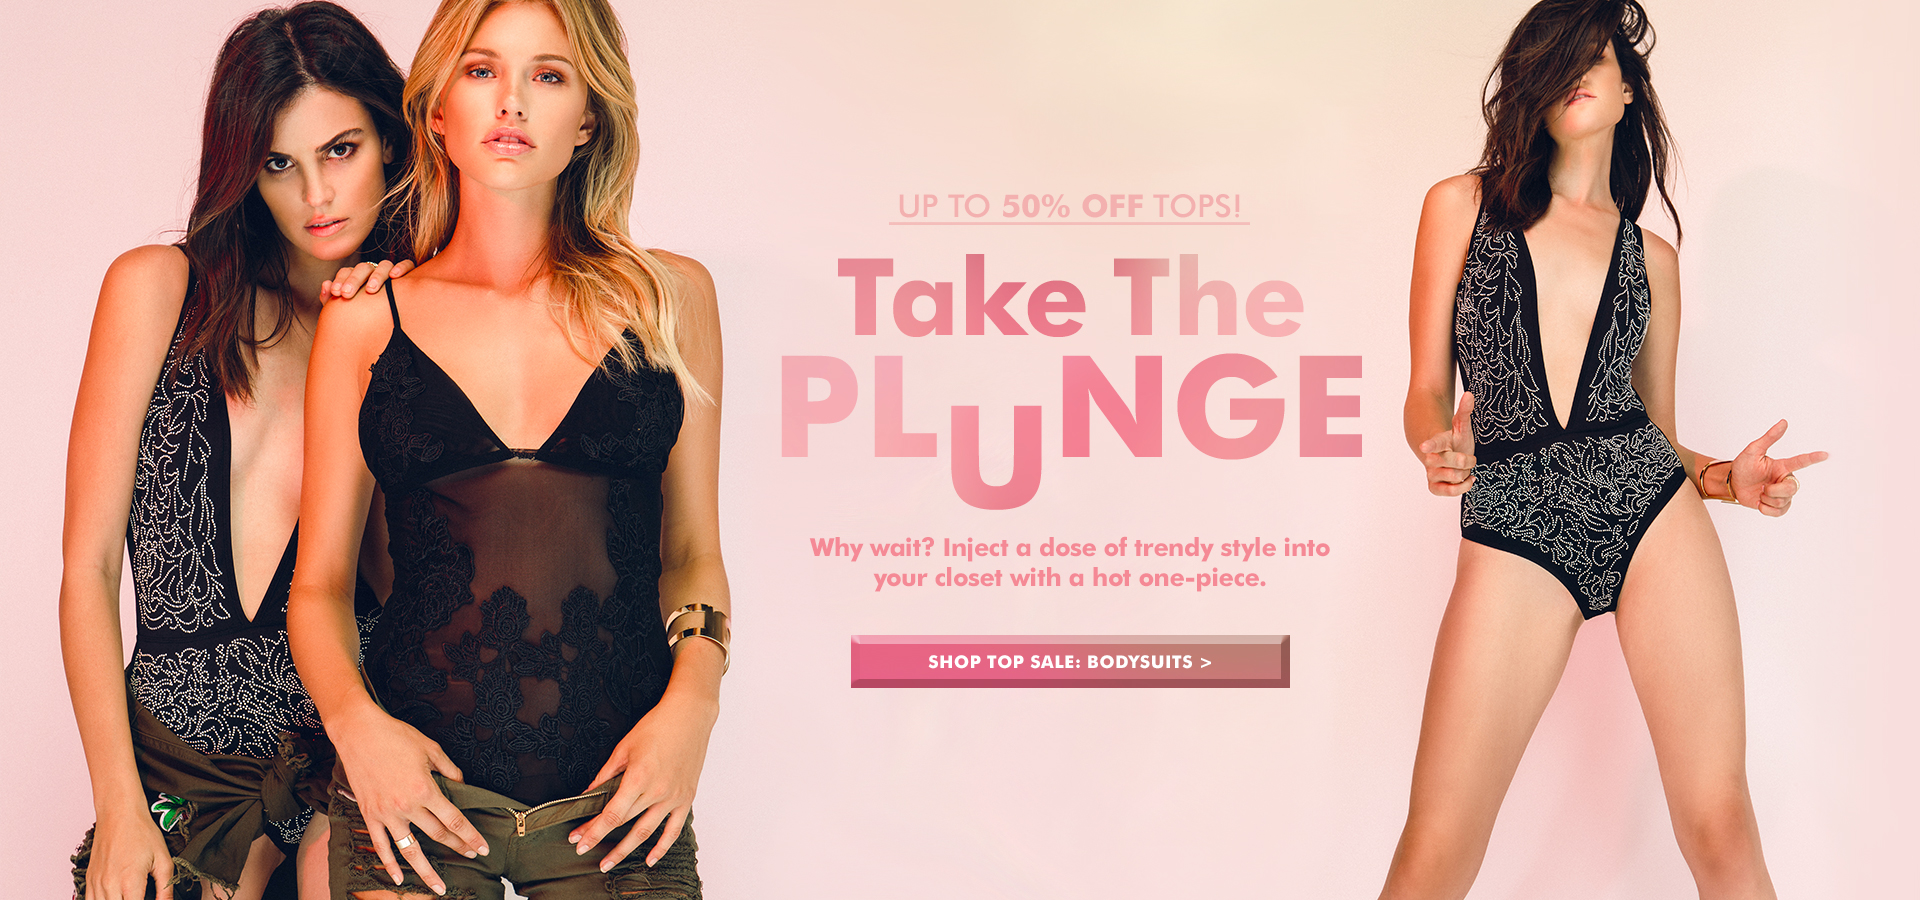 Up To 50% Off All Tops/ Shop Bodysuits